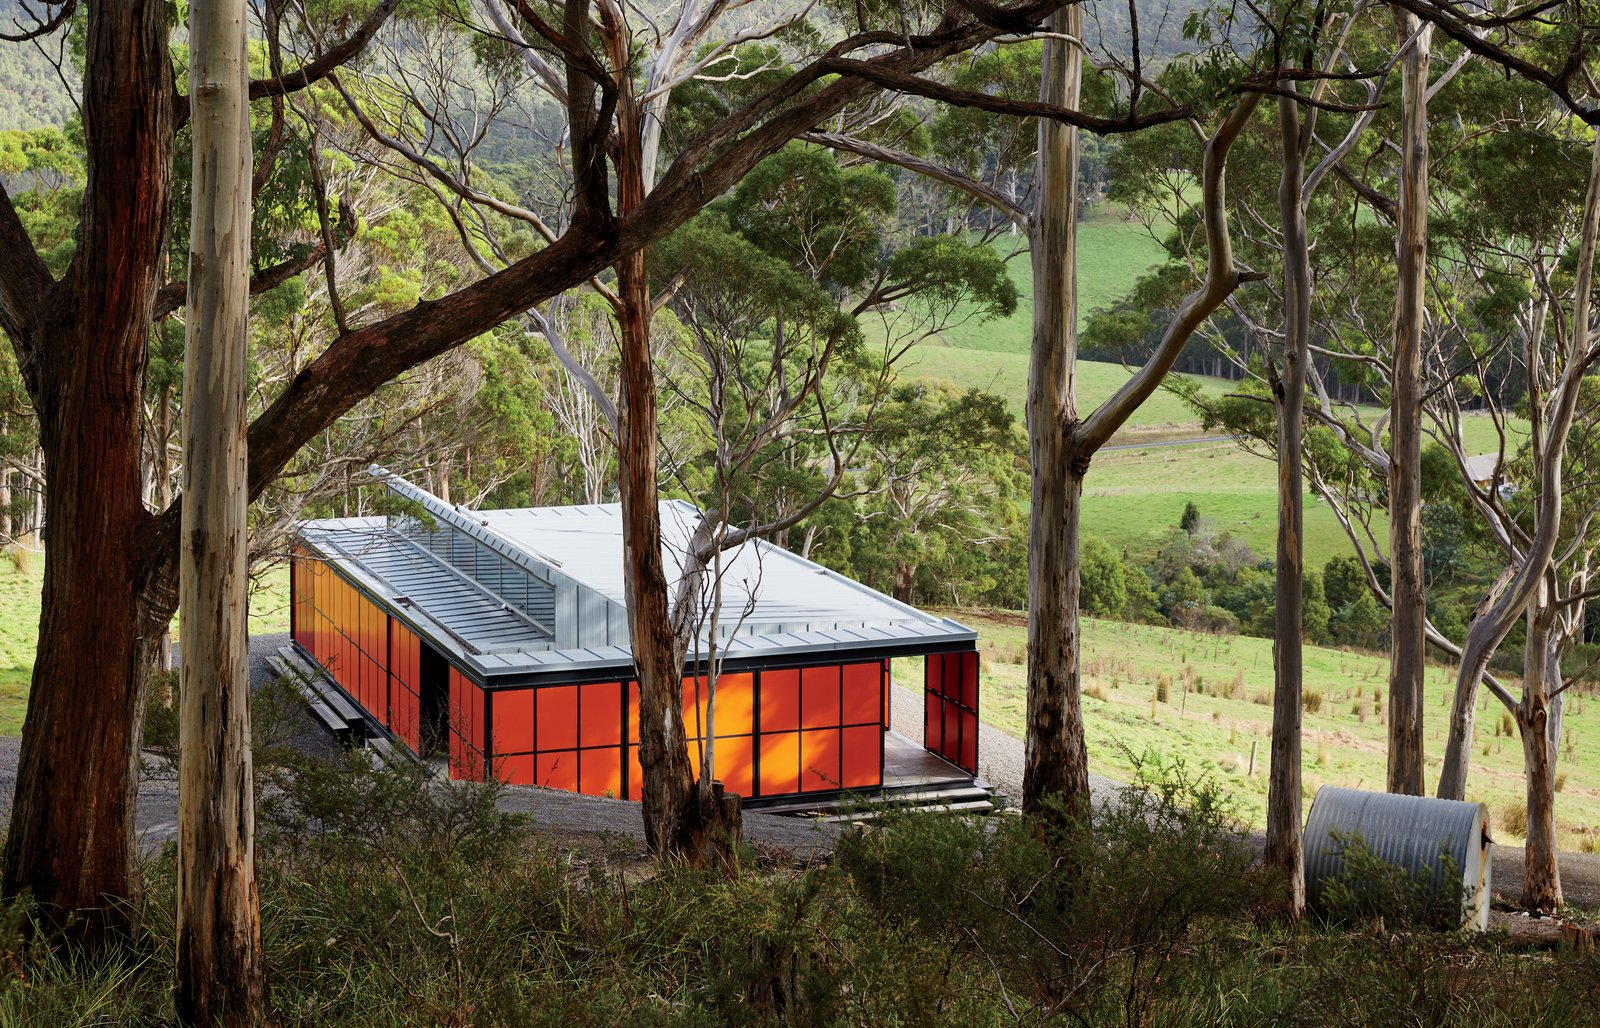 Articles about grid prefab combines open plan living rugged durability on Dwell.com